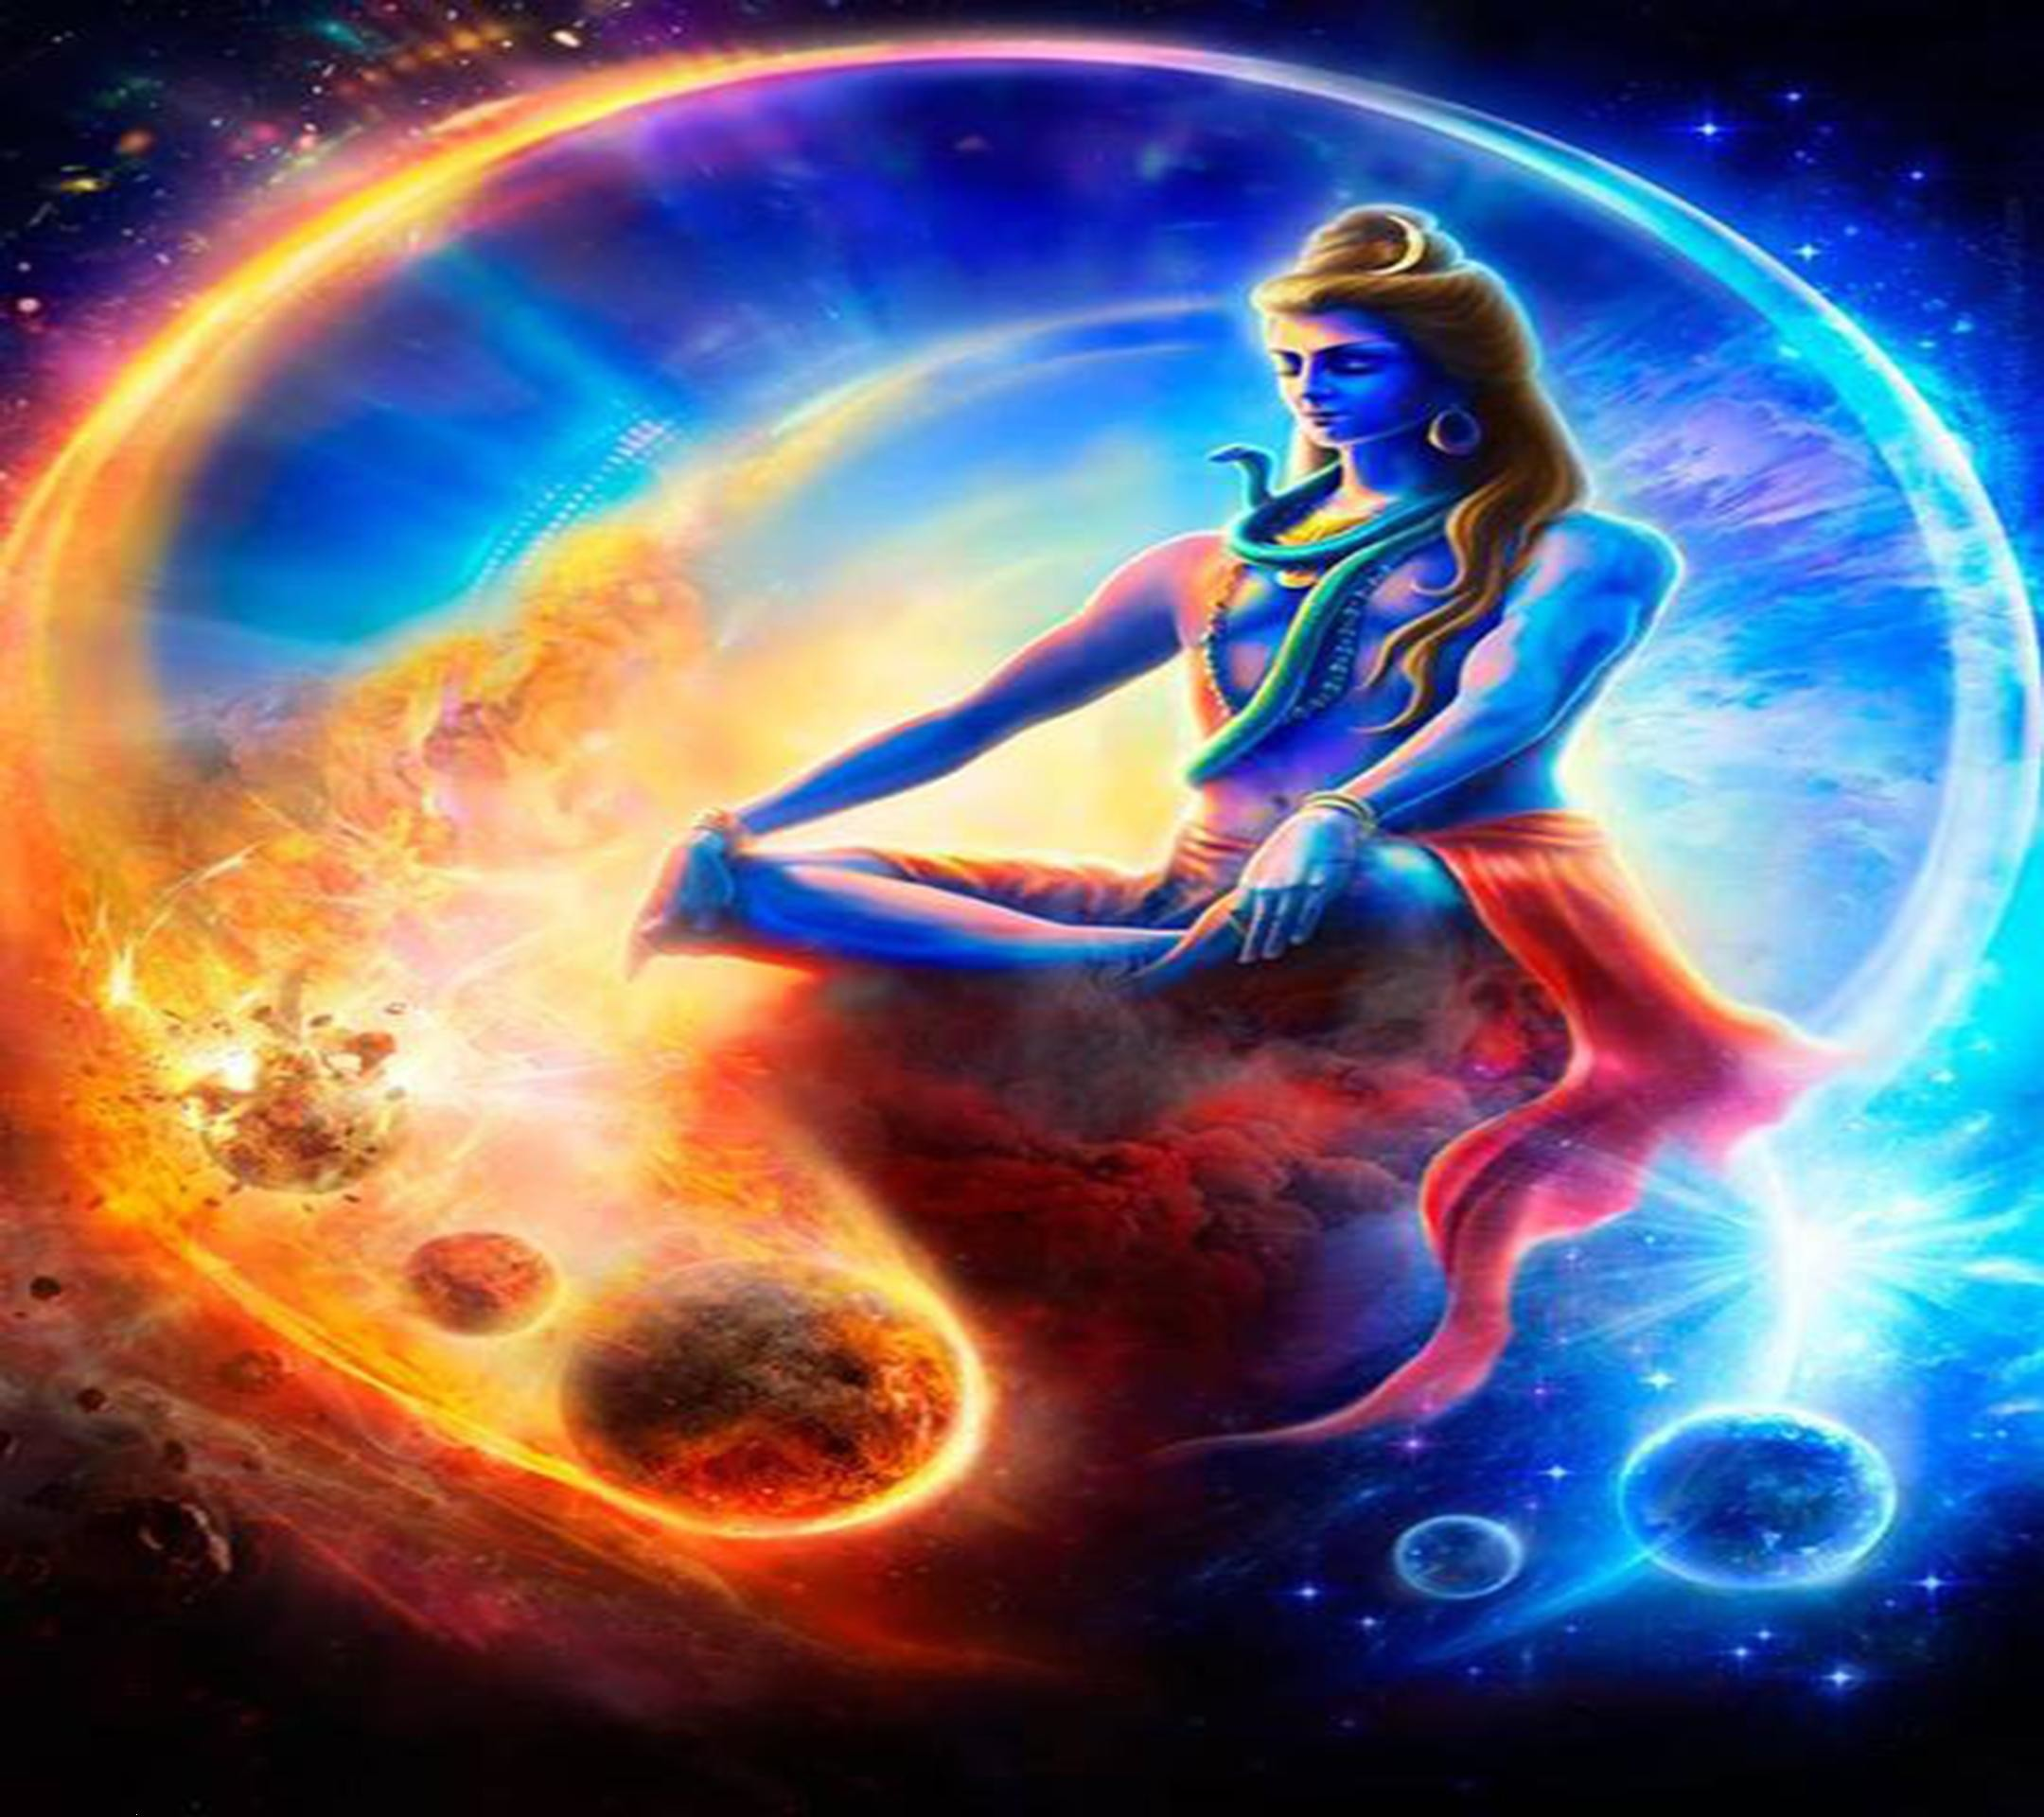 Lord Shiva Wallpapers High Resolution 73 Images